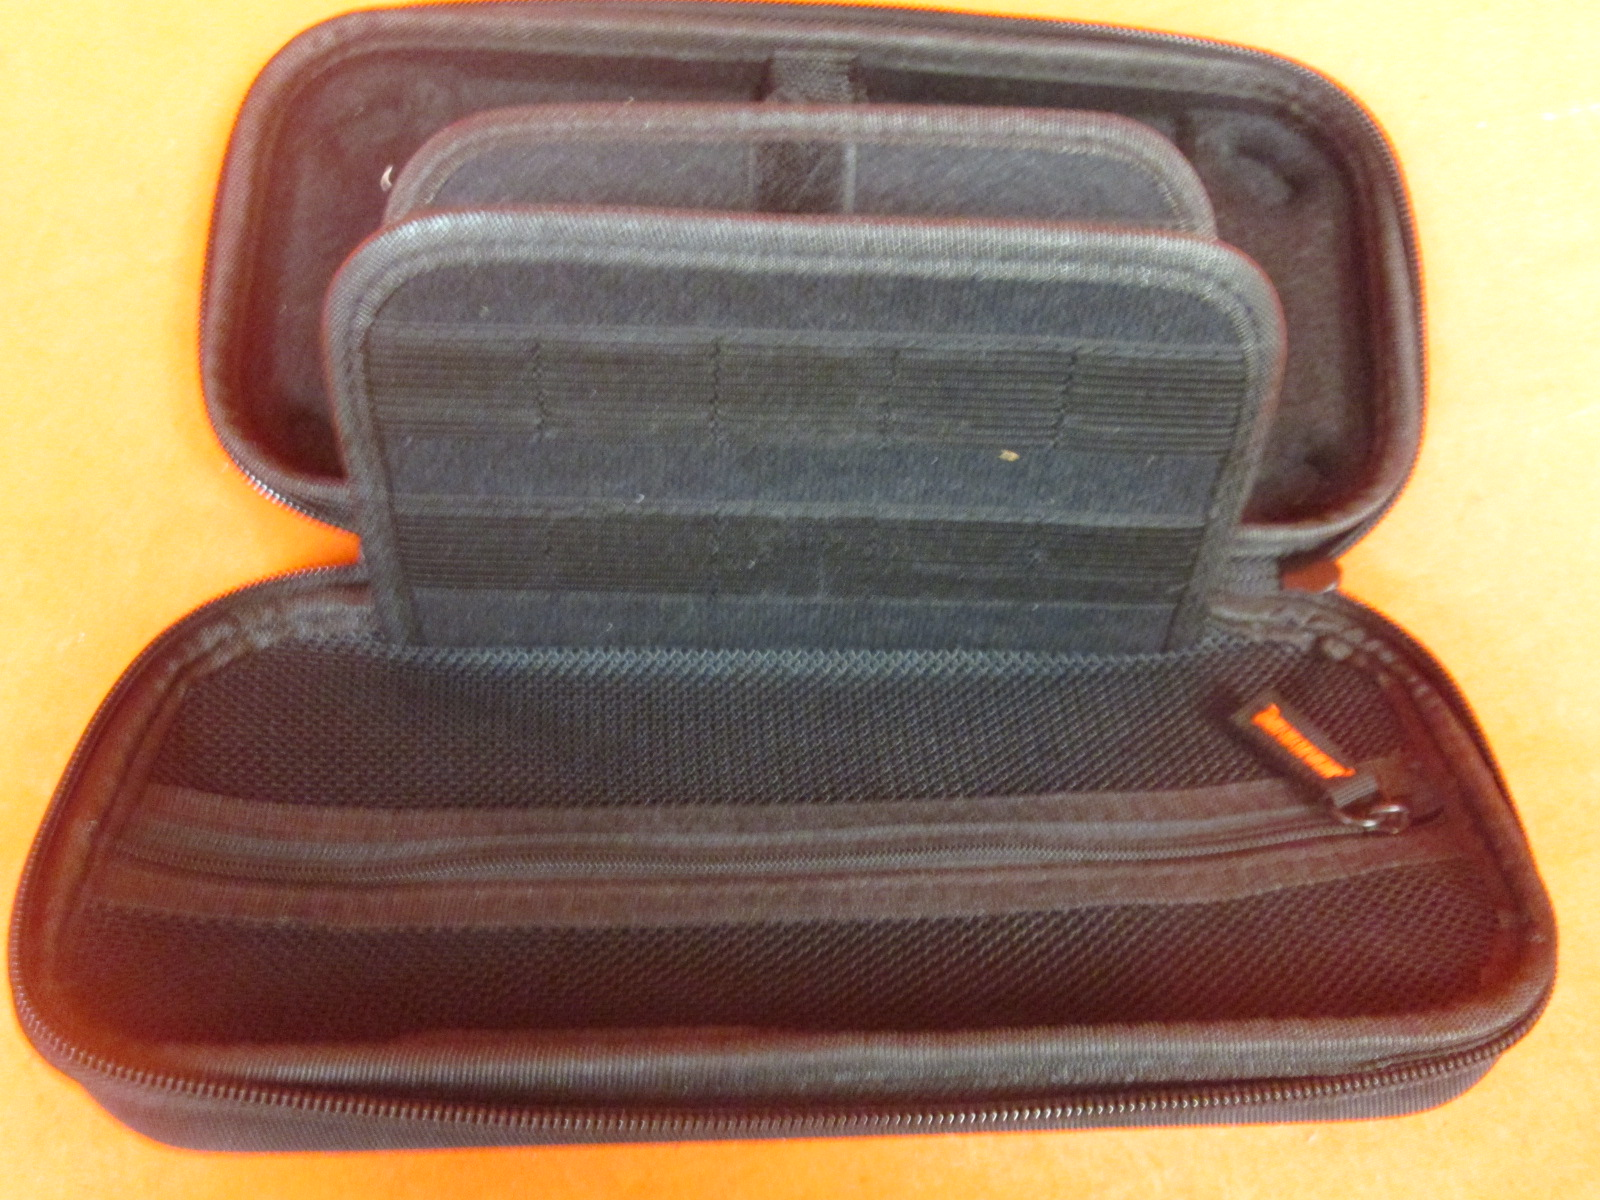 Image 1 of Nintendo Switch Carrying Case Protective Deluxe Travel Case Black